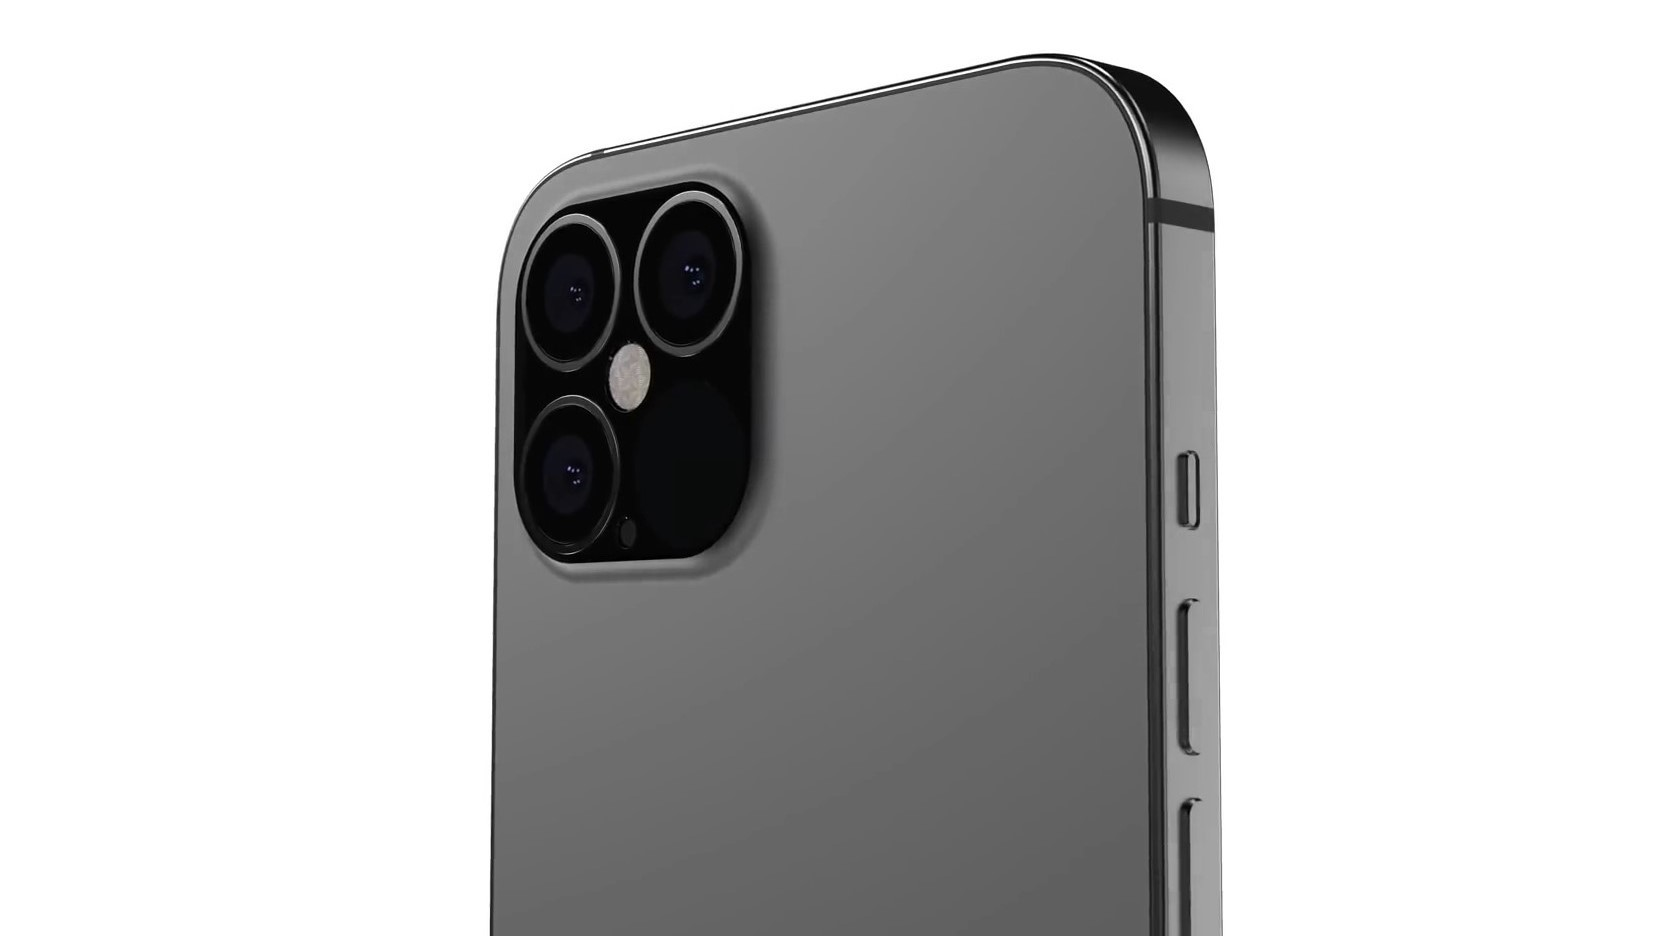 iphone 12 autofocus and periscope lens